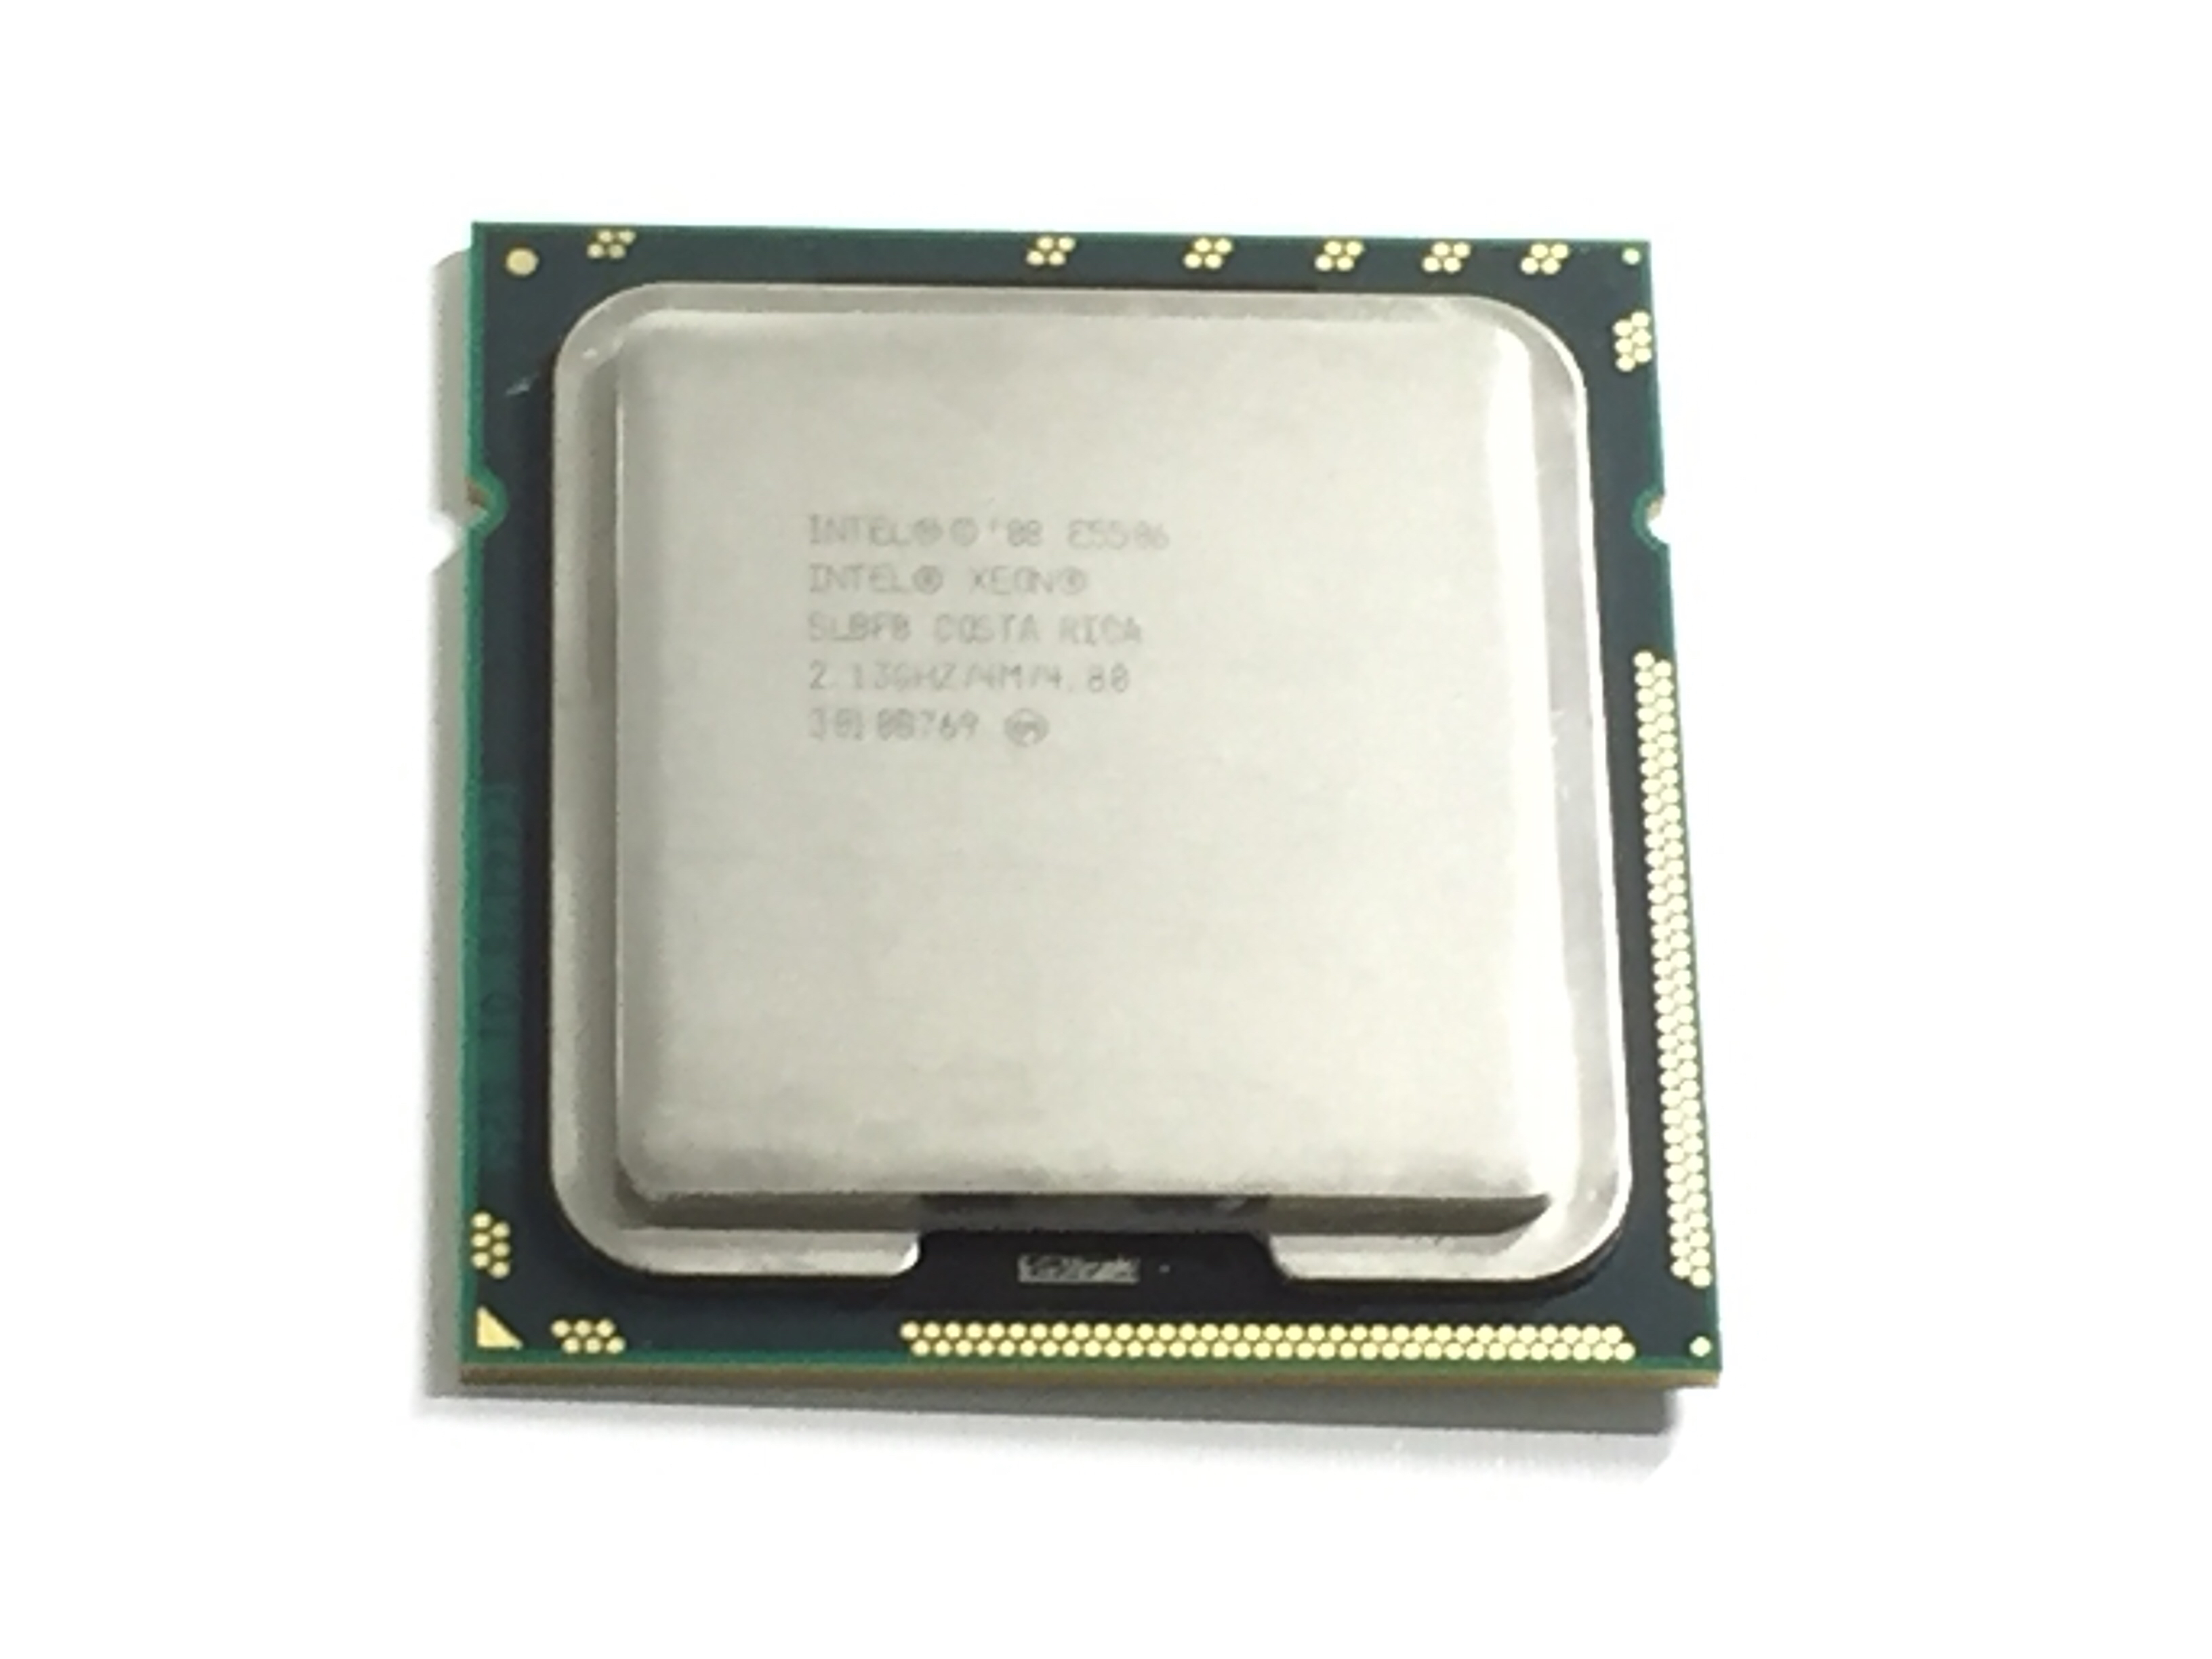 INTEL XEON E5506 2.13GHZ QUAD-CORE 4MB LGA1366 PROCESSOR (SLBF8)